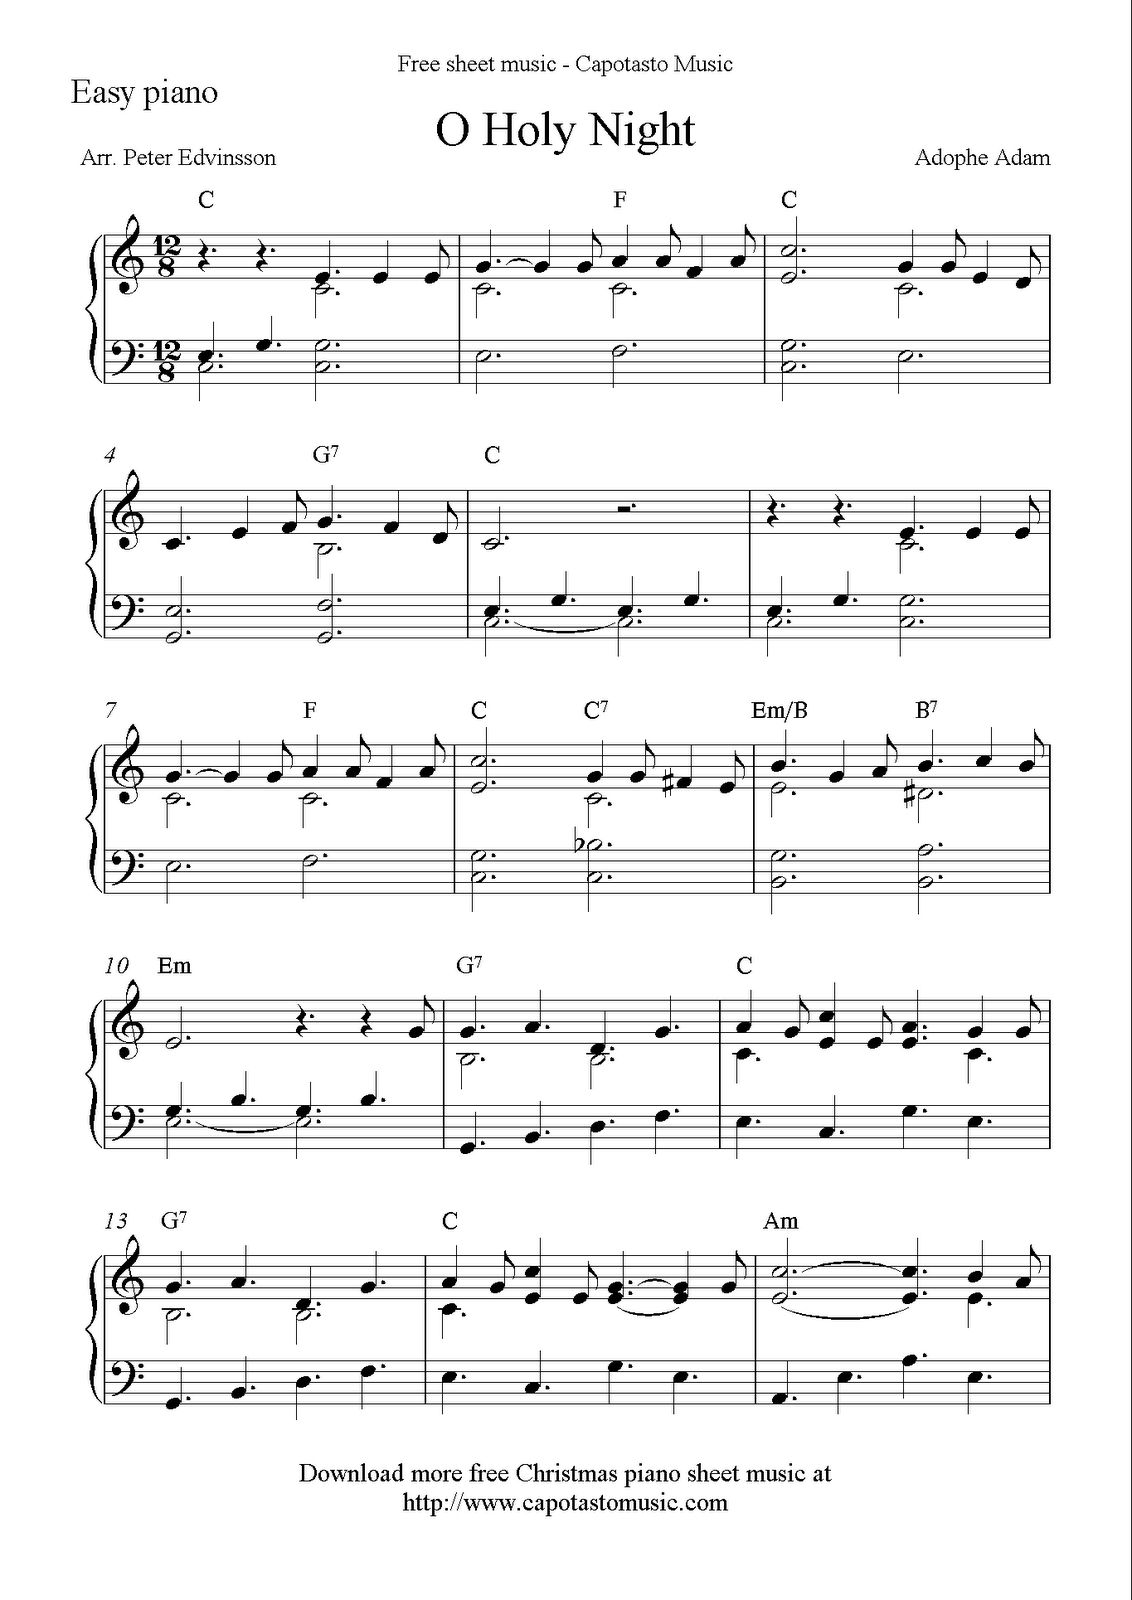 Free Sheet Music Scores: Free Easy Christmas Piano Sheet Music, O - Free Printable Sheet Music For Voice And Piano